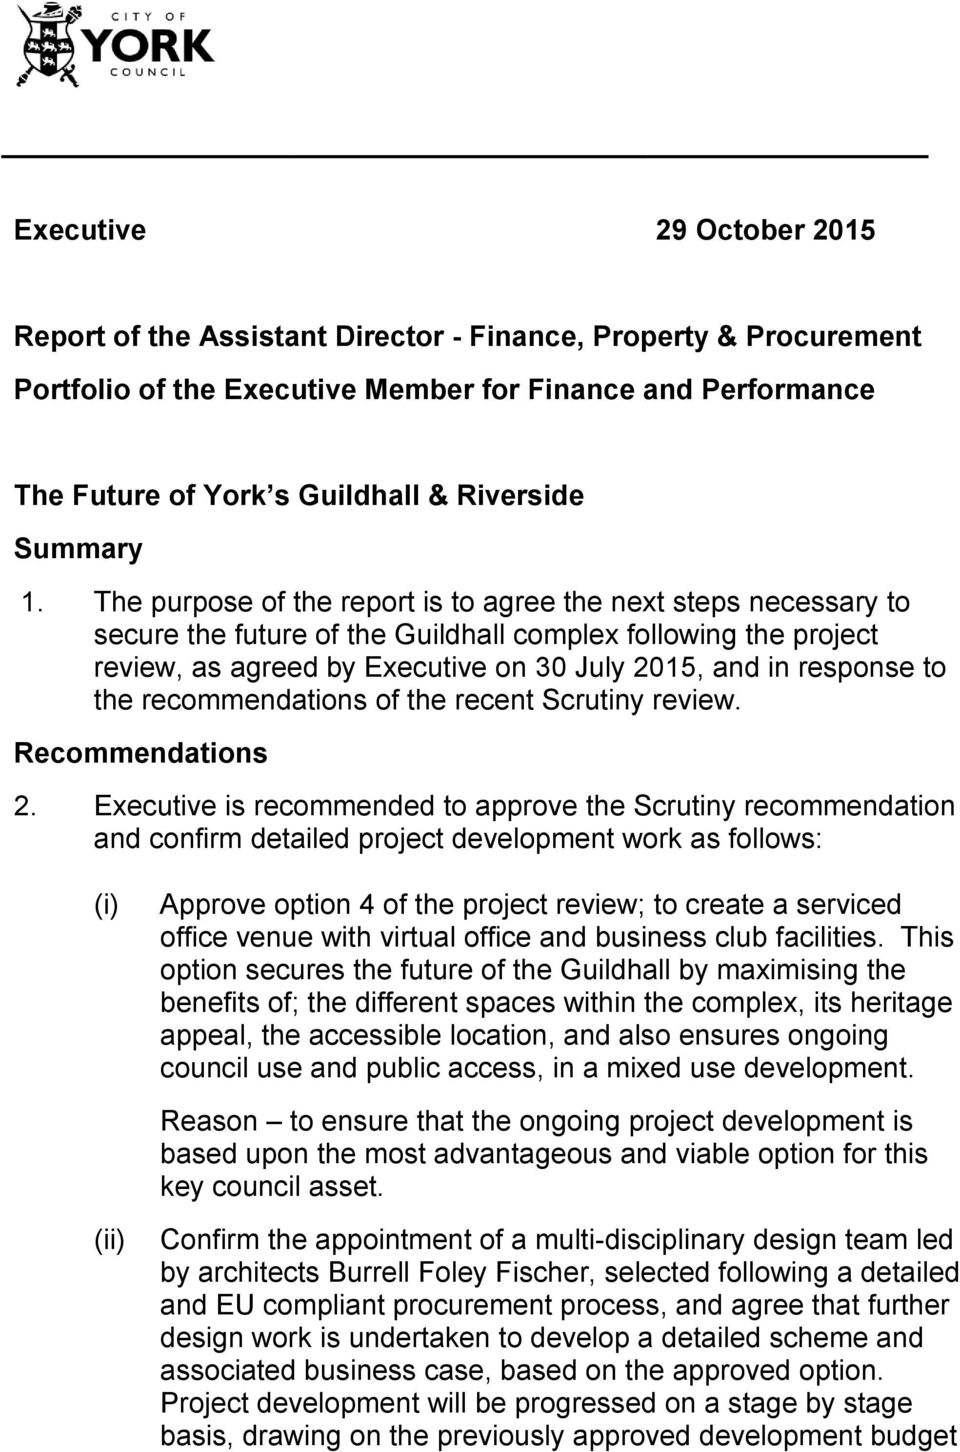 The purpose of the report is to agree the next steps necessary to secure the future of the Guildhall complex following the project review, as agreed by Executive on 30 July 2015, and in response to